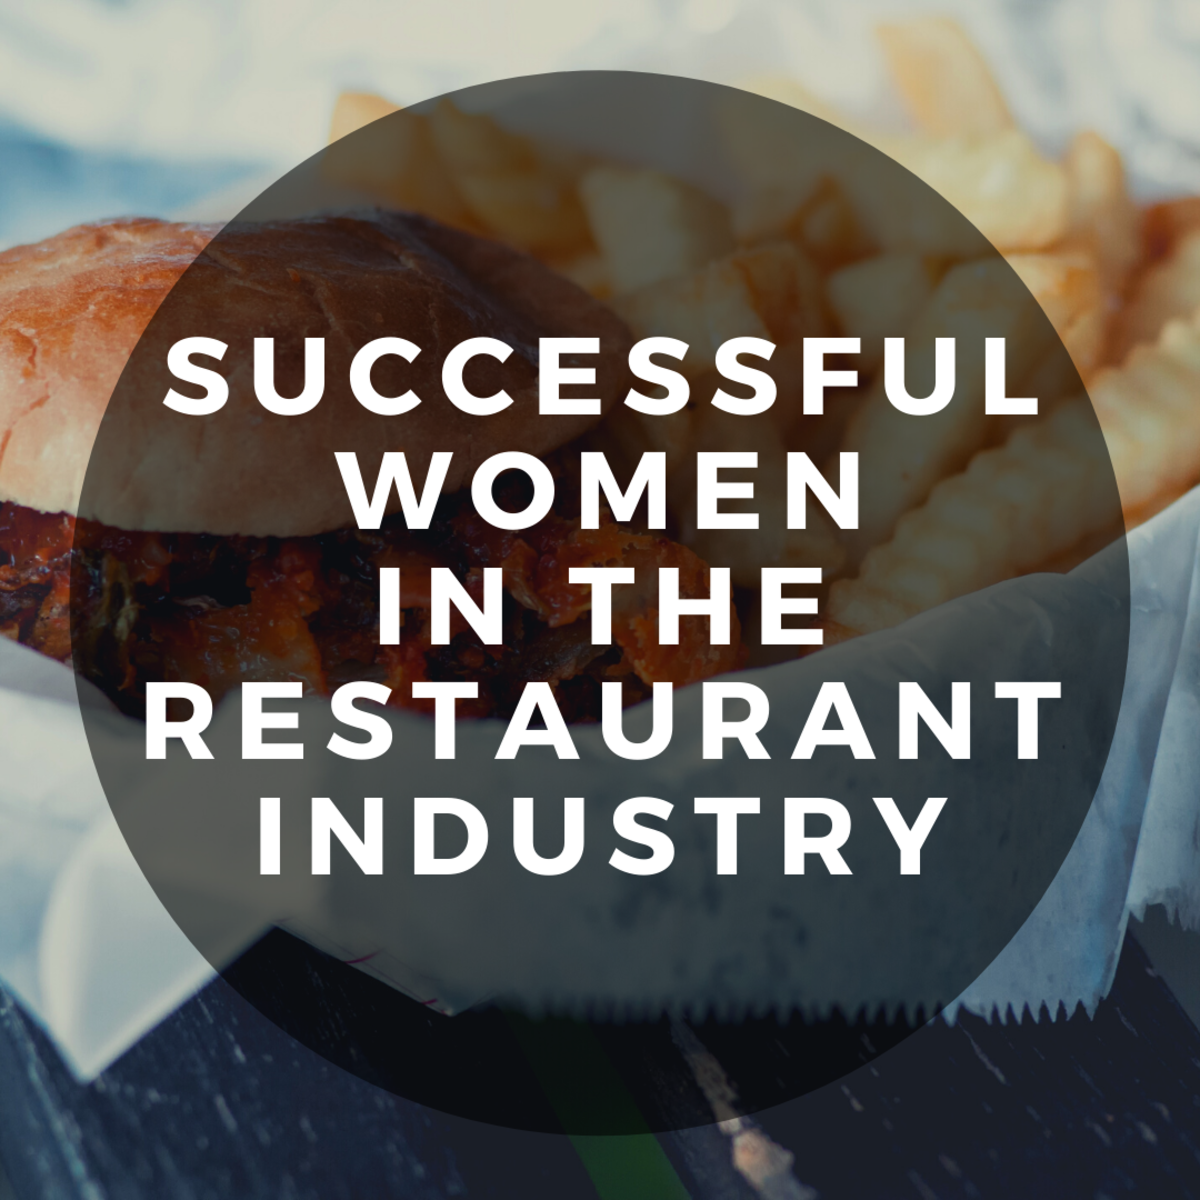 Learn some stories of female entrepreneurs who've succeeded in the restaurant industry.